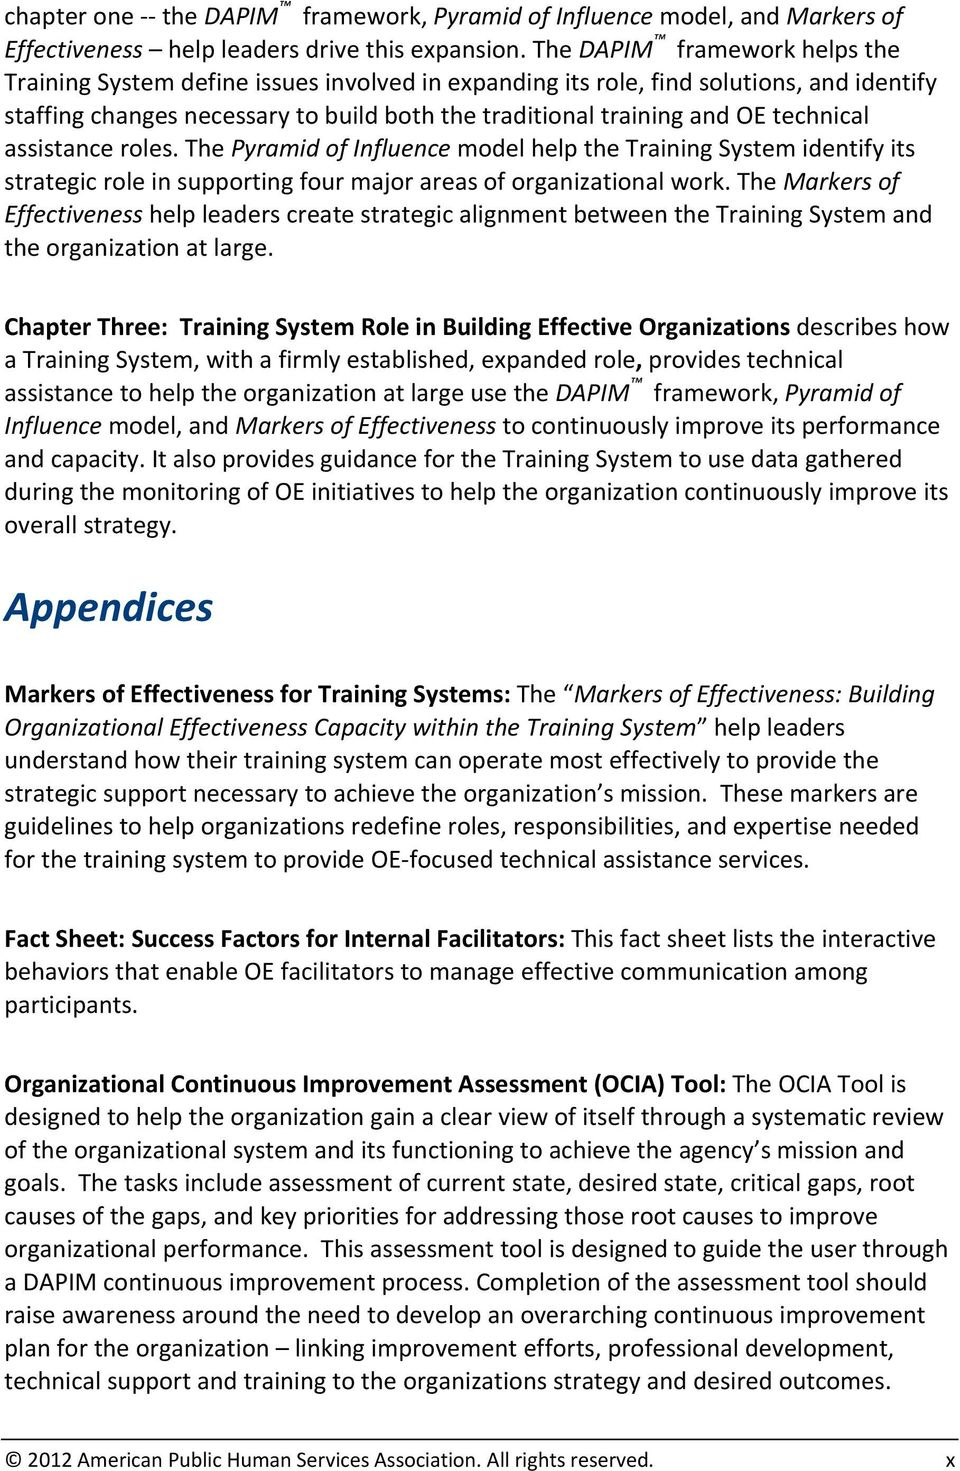 technical assistance roles. The Pyramid of Influence model help the Training System identify its strategic role in supporting four major areas of organizational work.